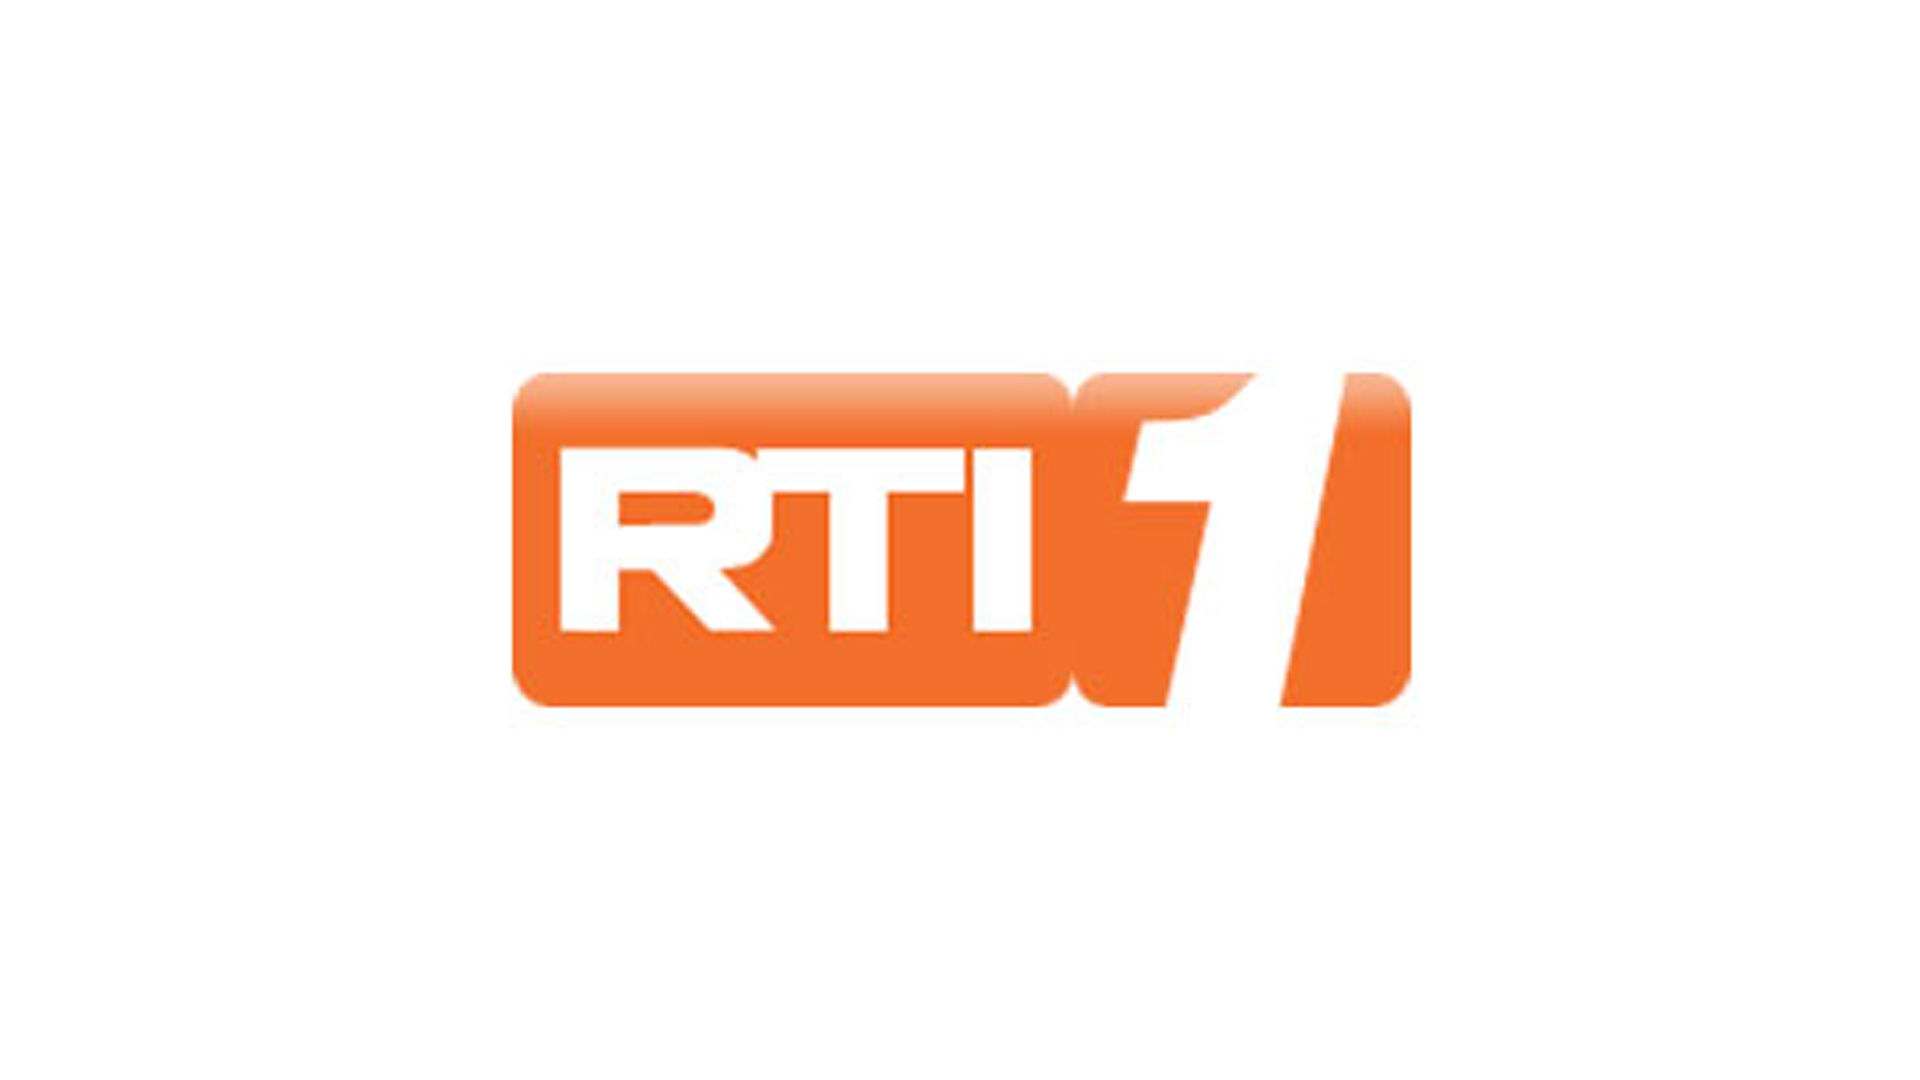 regarder rti 1 en direct live 100 gratuit tv direct. Black Bedroom Furniture Sets. Home Design Ideas